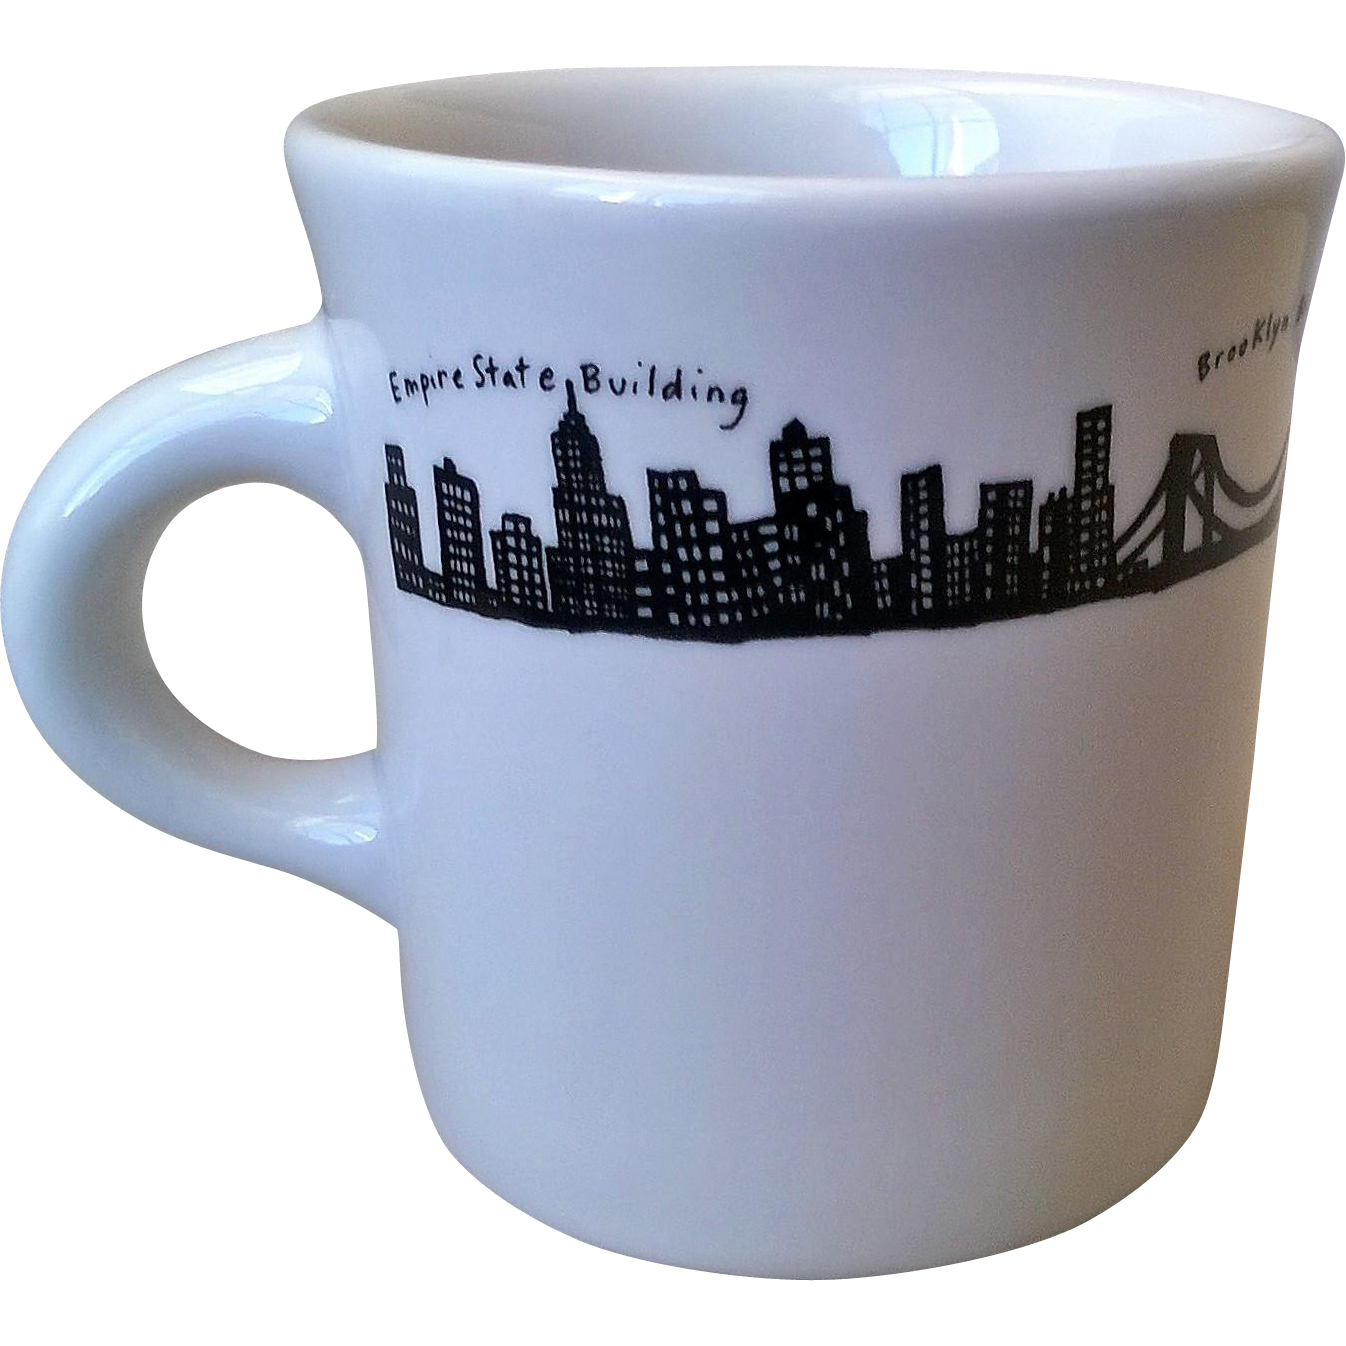 fishs eddy chat Title: fishs eddy new york skyline mug, price: $10 usd , category: vintage collectibles:kitchen ware:new york city memorabilia, shop: annie's avenue antiques, description: offered for your consideration is this vintage restaurant ware mug made by fishs eddy featuring the the famous new york city skyline - a perfect memento of your visit to the .